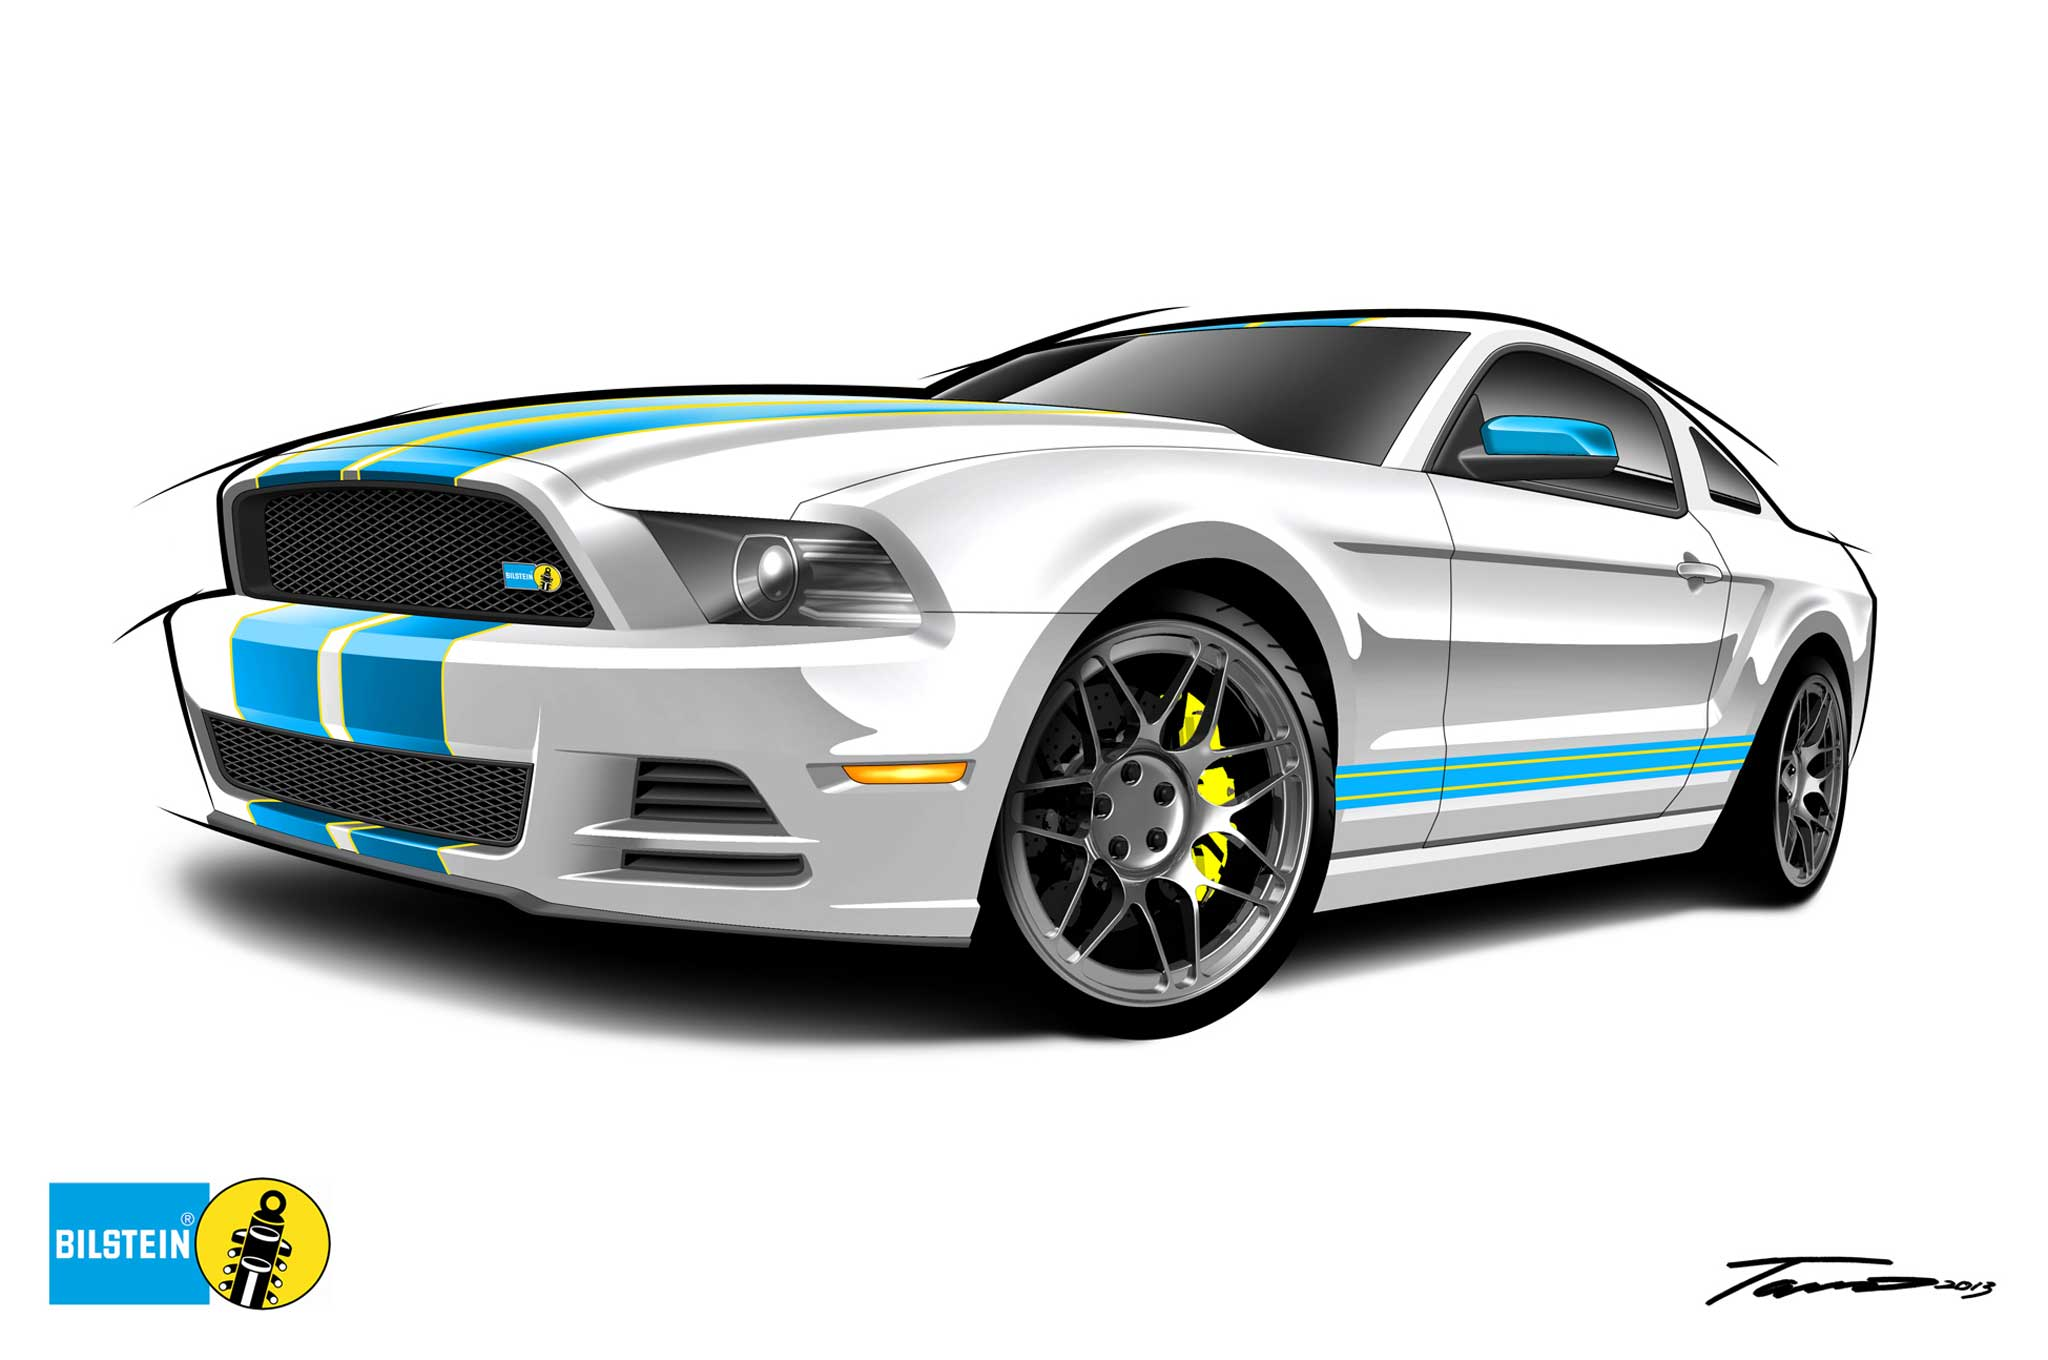 Win a Custom Mustang F 150 or 335i in Bilstein Contest Motor Trend